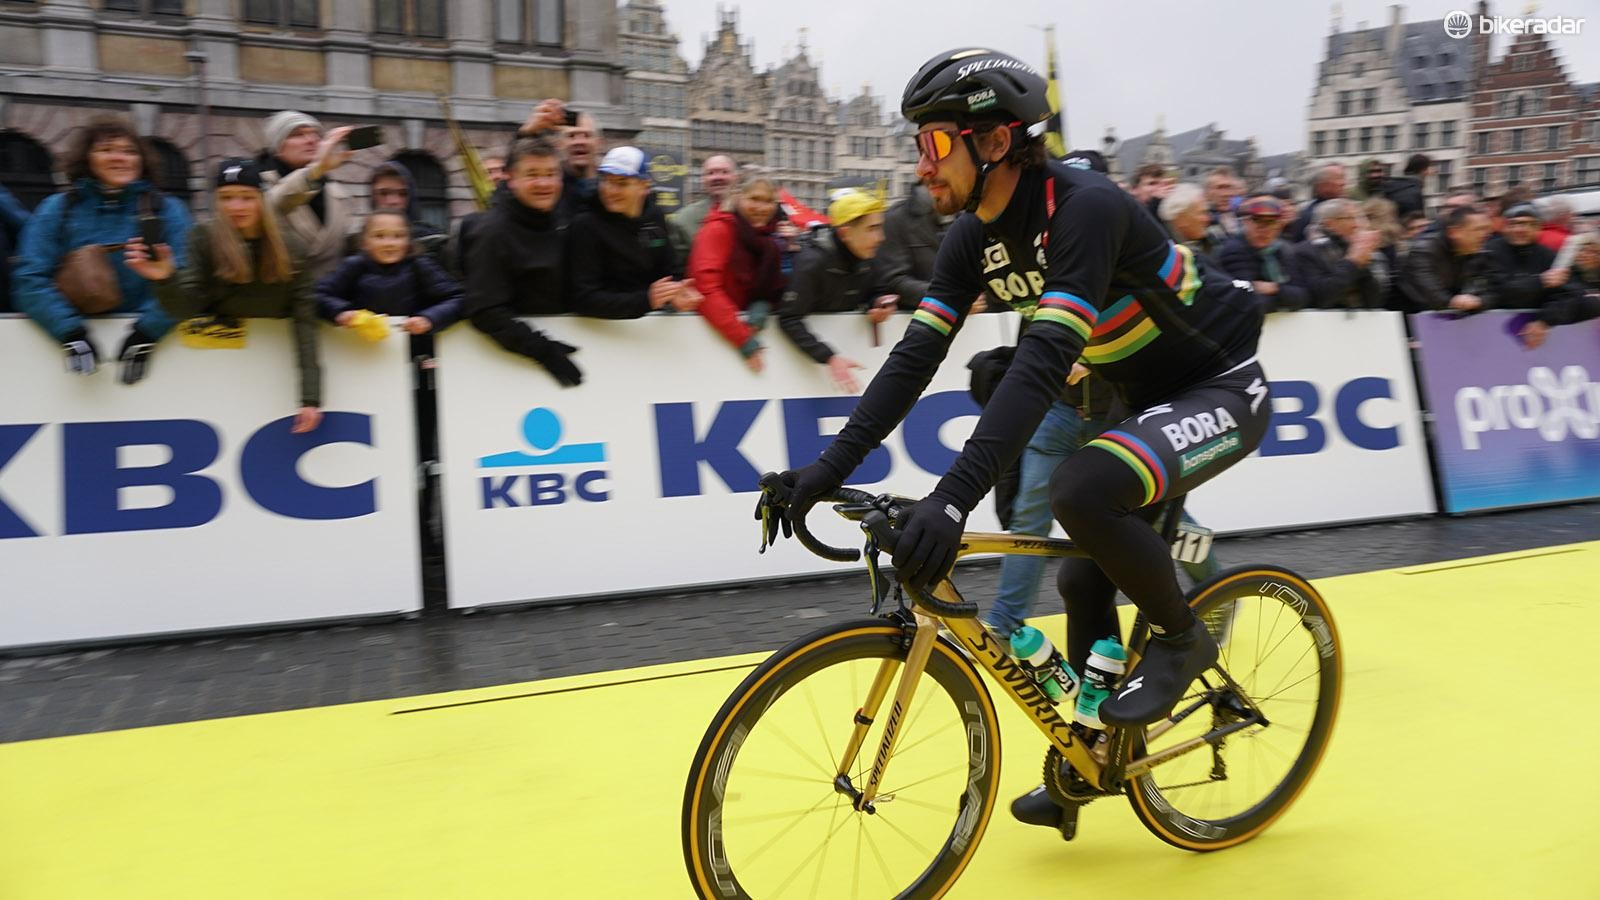 World champion Peter Sagan rode the Tour of Flanders on his new Sagan Collection S-Works Tarmac